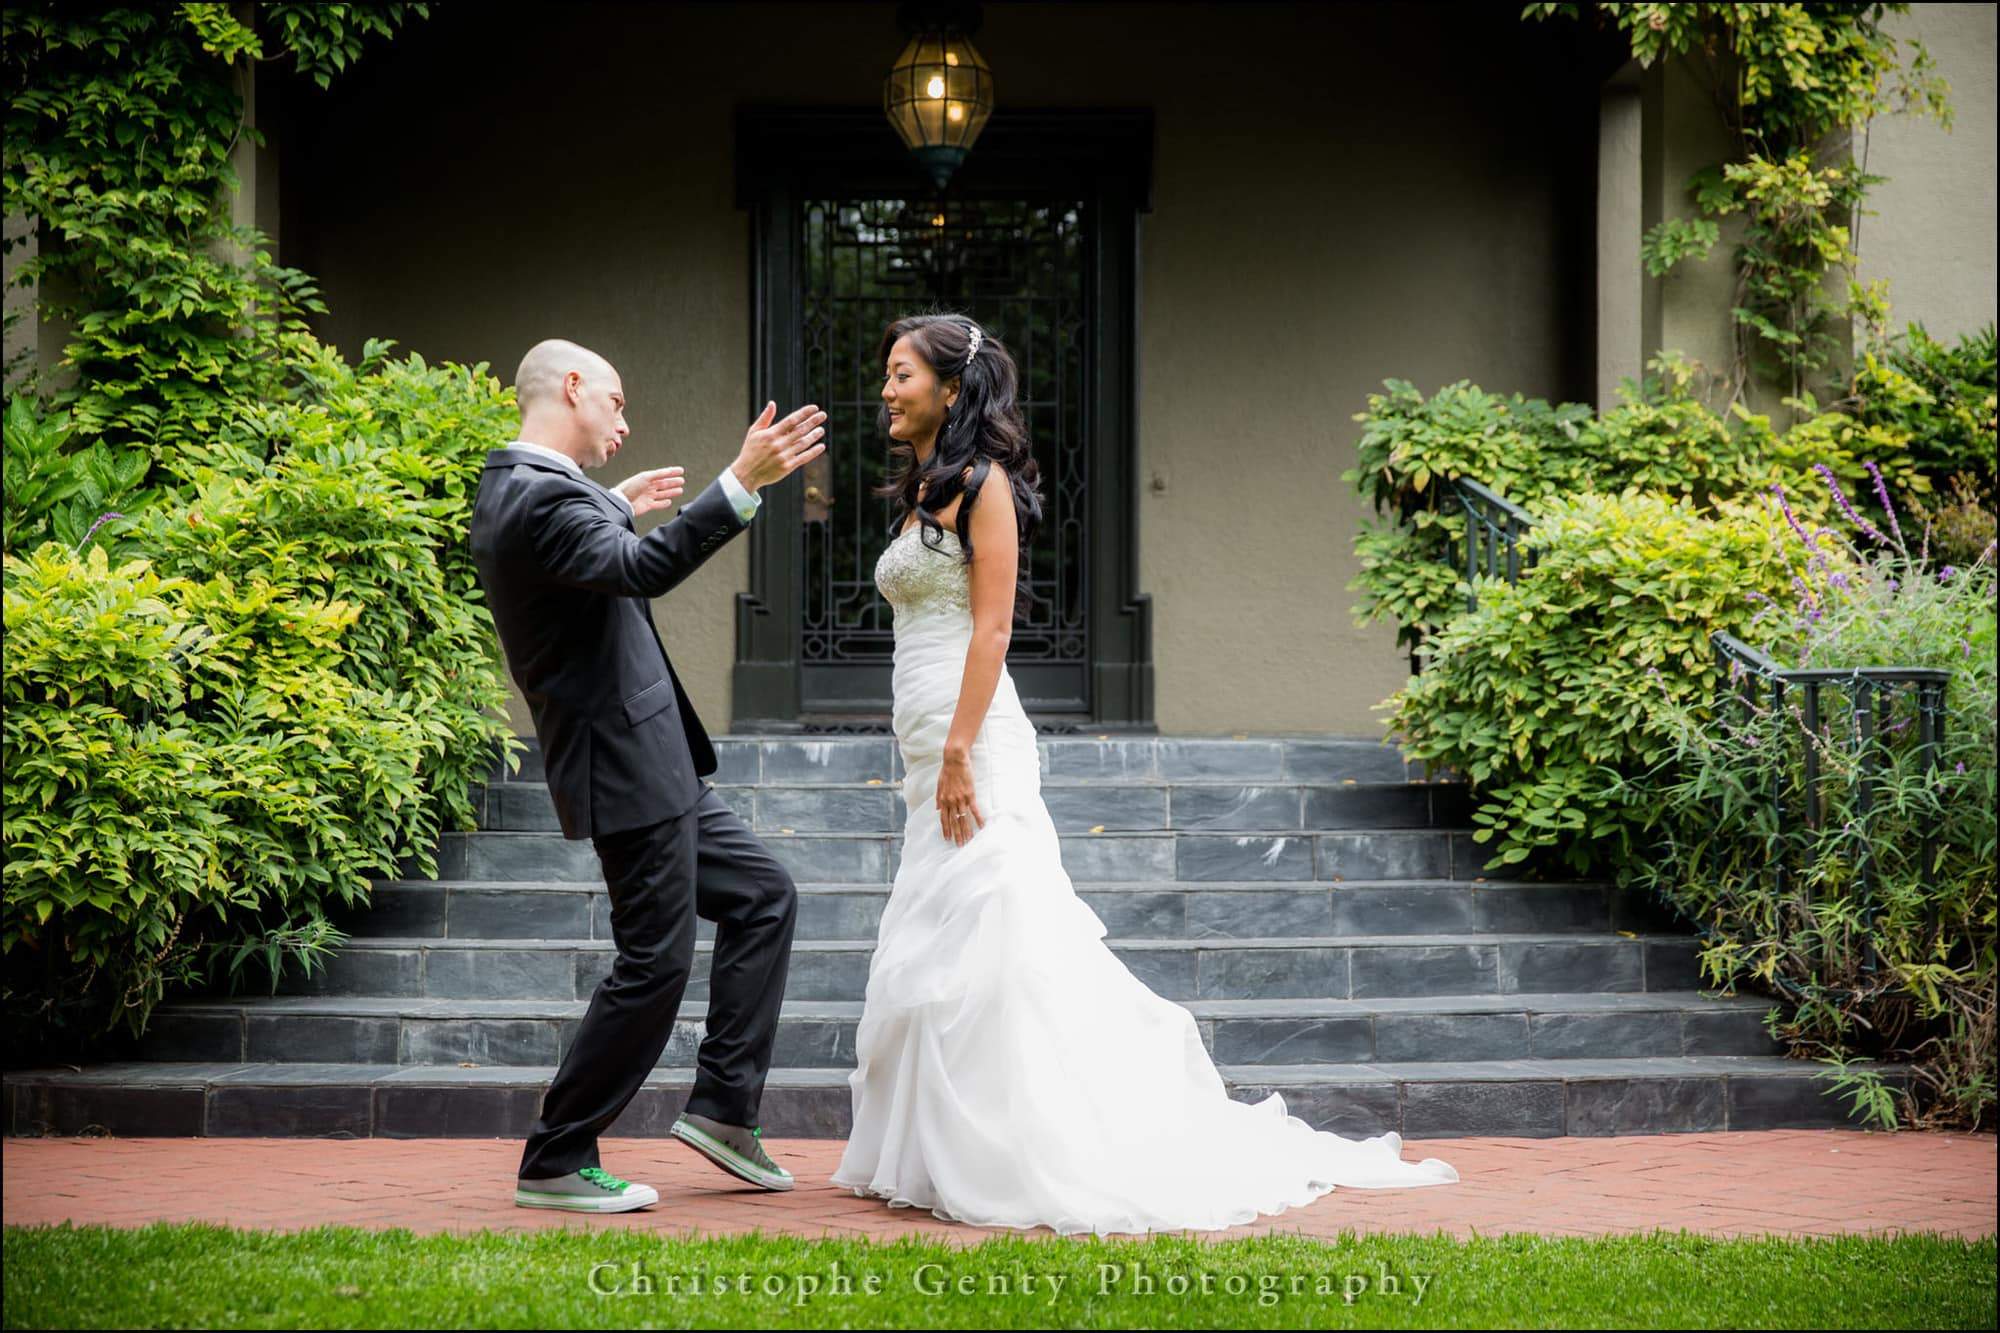 Wedding photography In San Francisco - Shelley & Cory